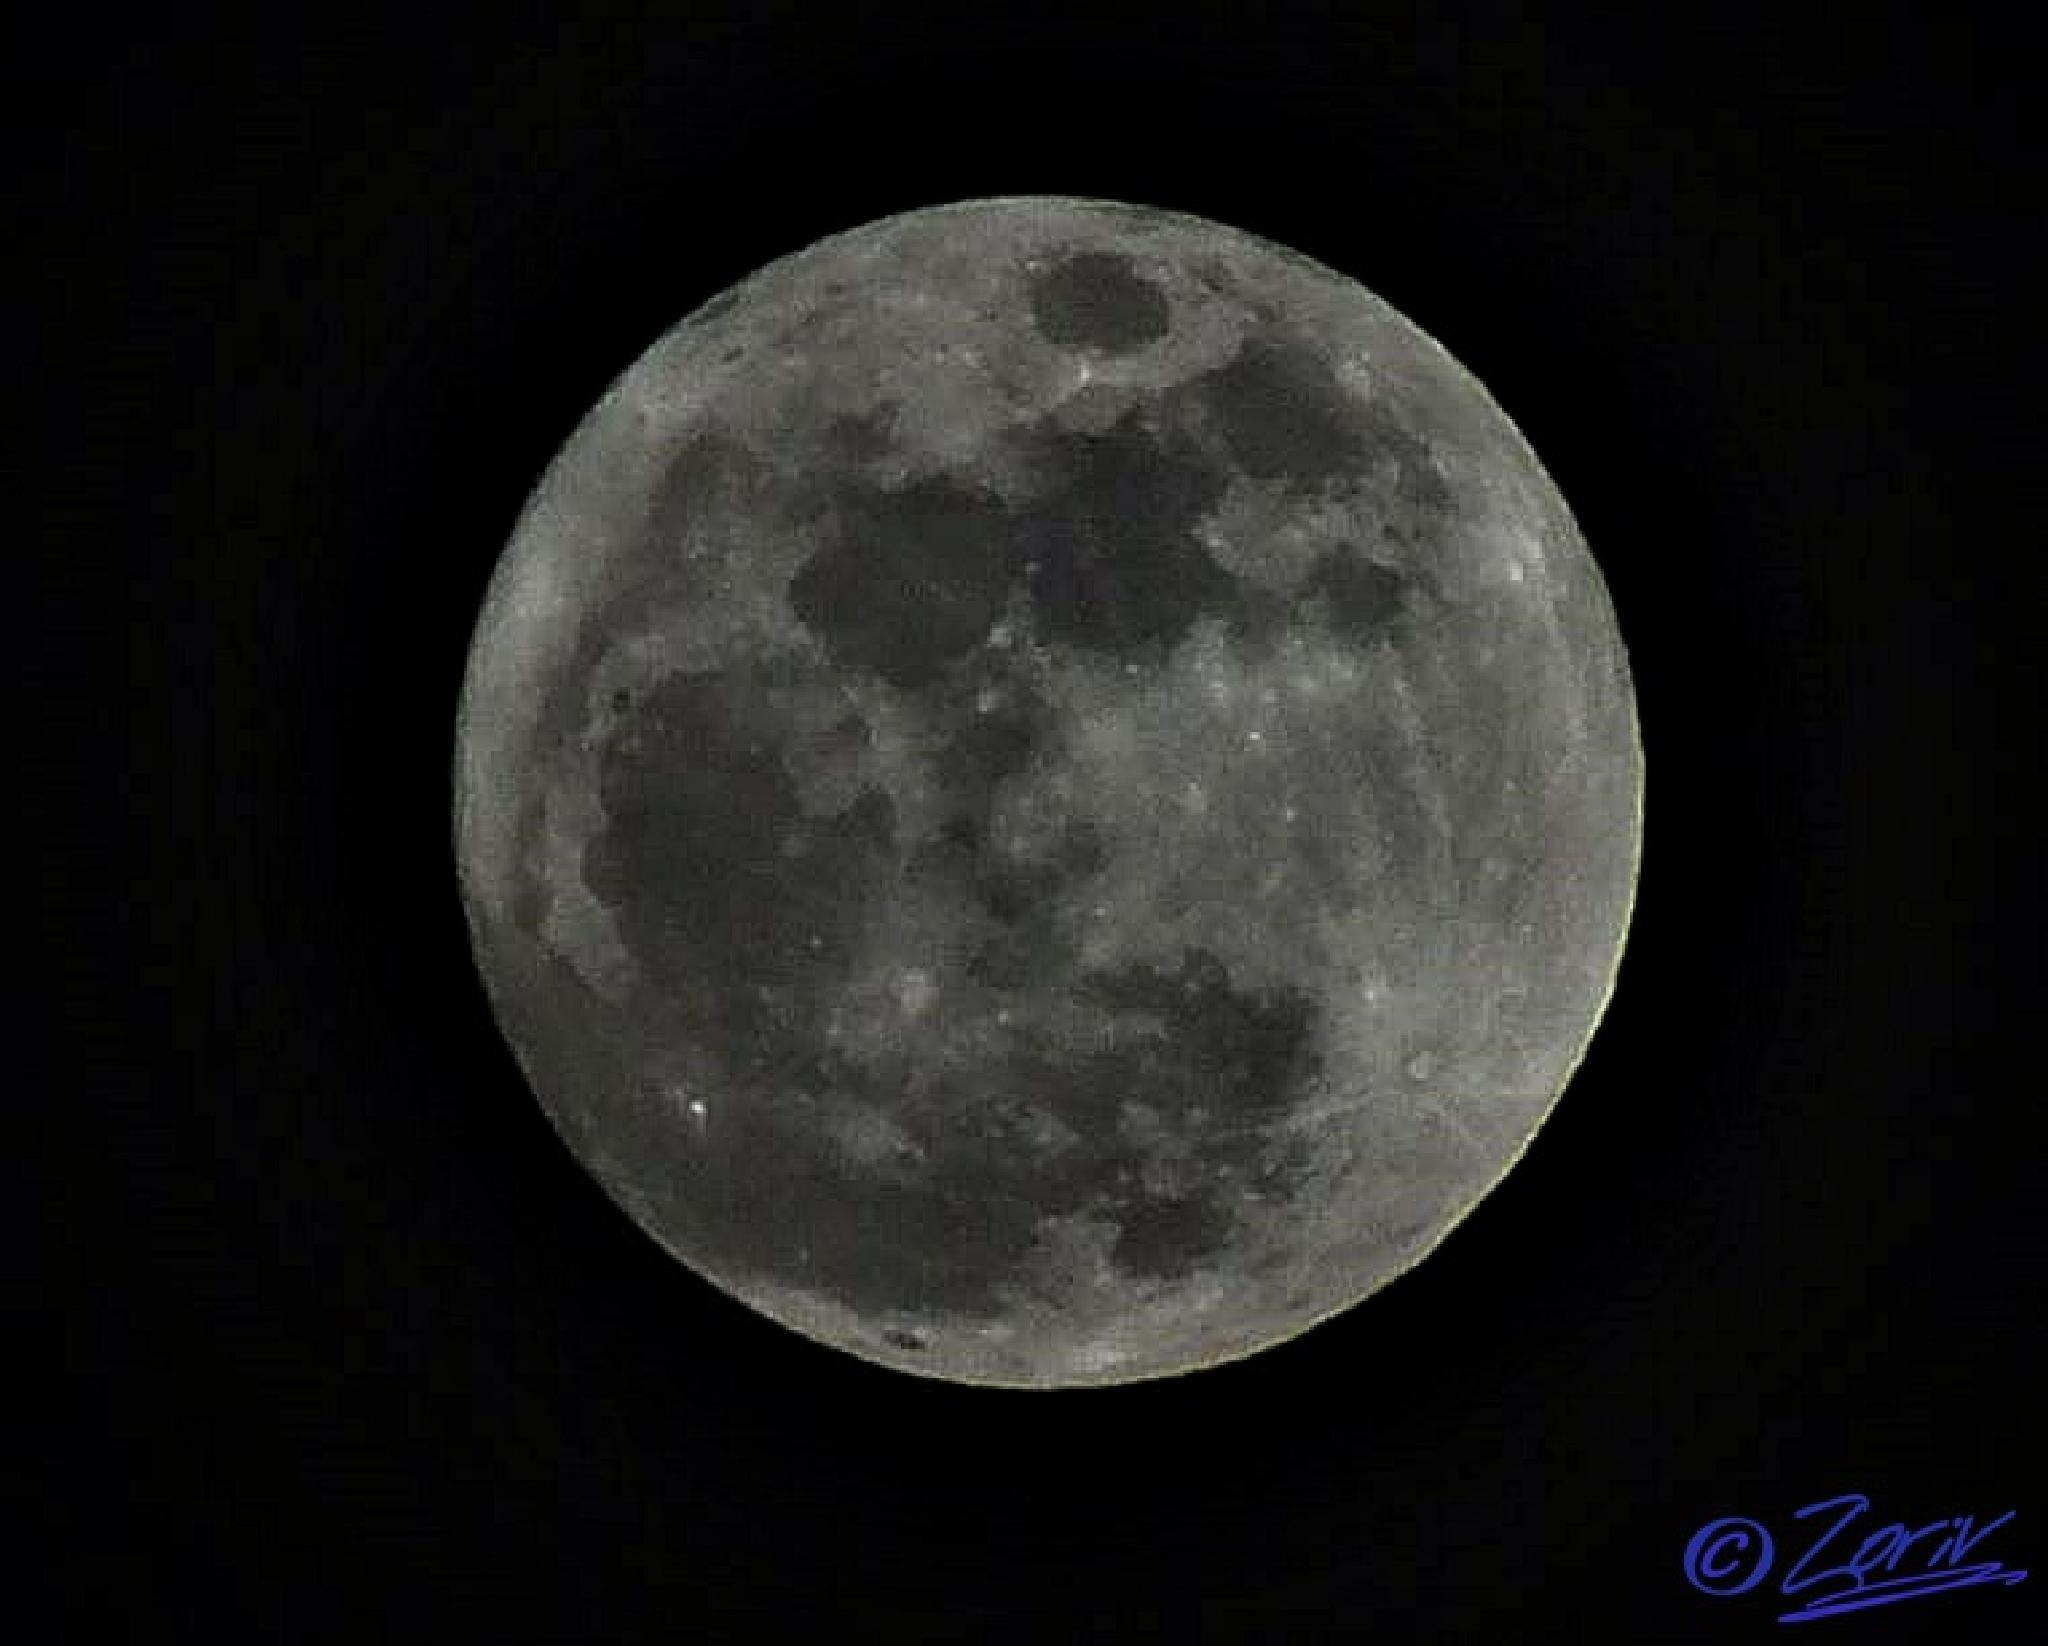 The full Moon 100% illuminated right now ( February 3, 2015) at 19:45 (CET) by zoriv